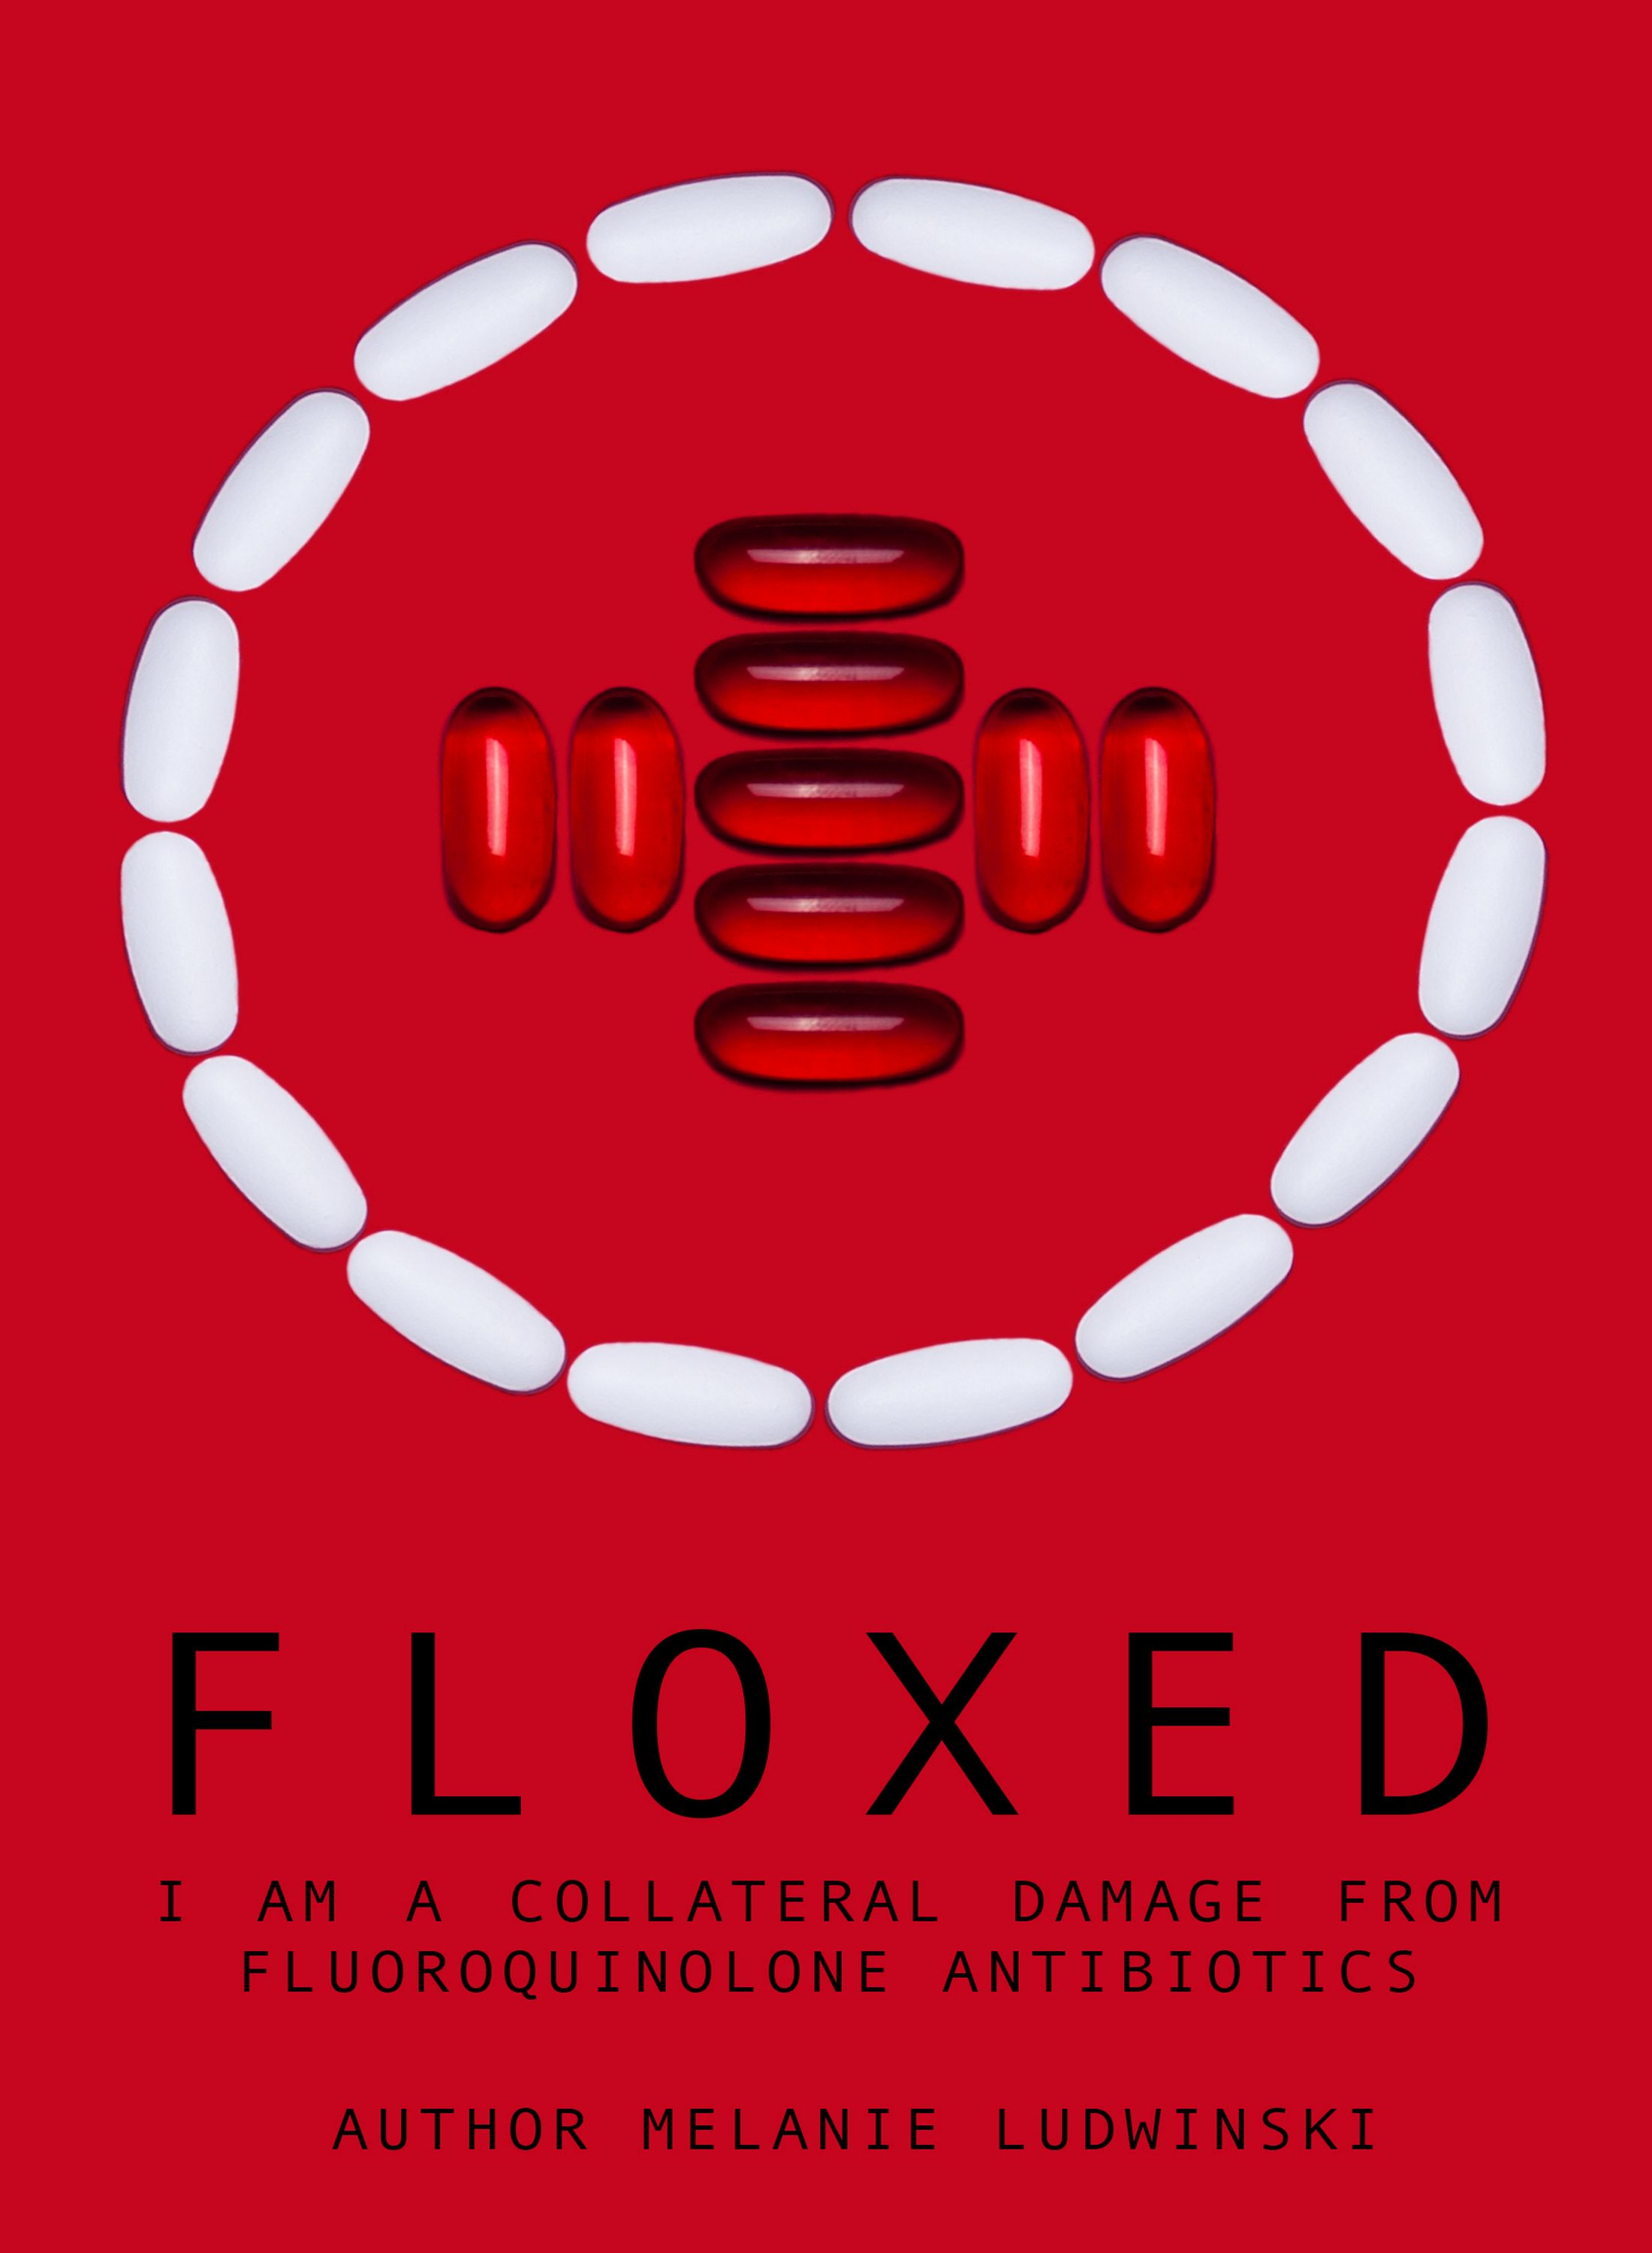 Melanie Ludwinski Floxed - I am a collateral damage from fluoroquinolone Antibiotics antibiotics